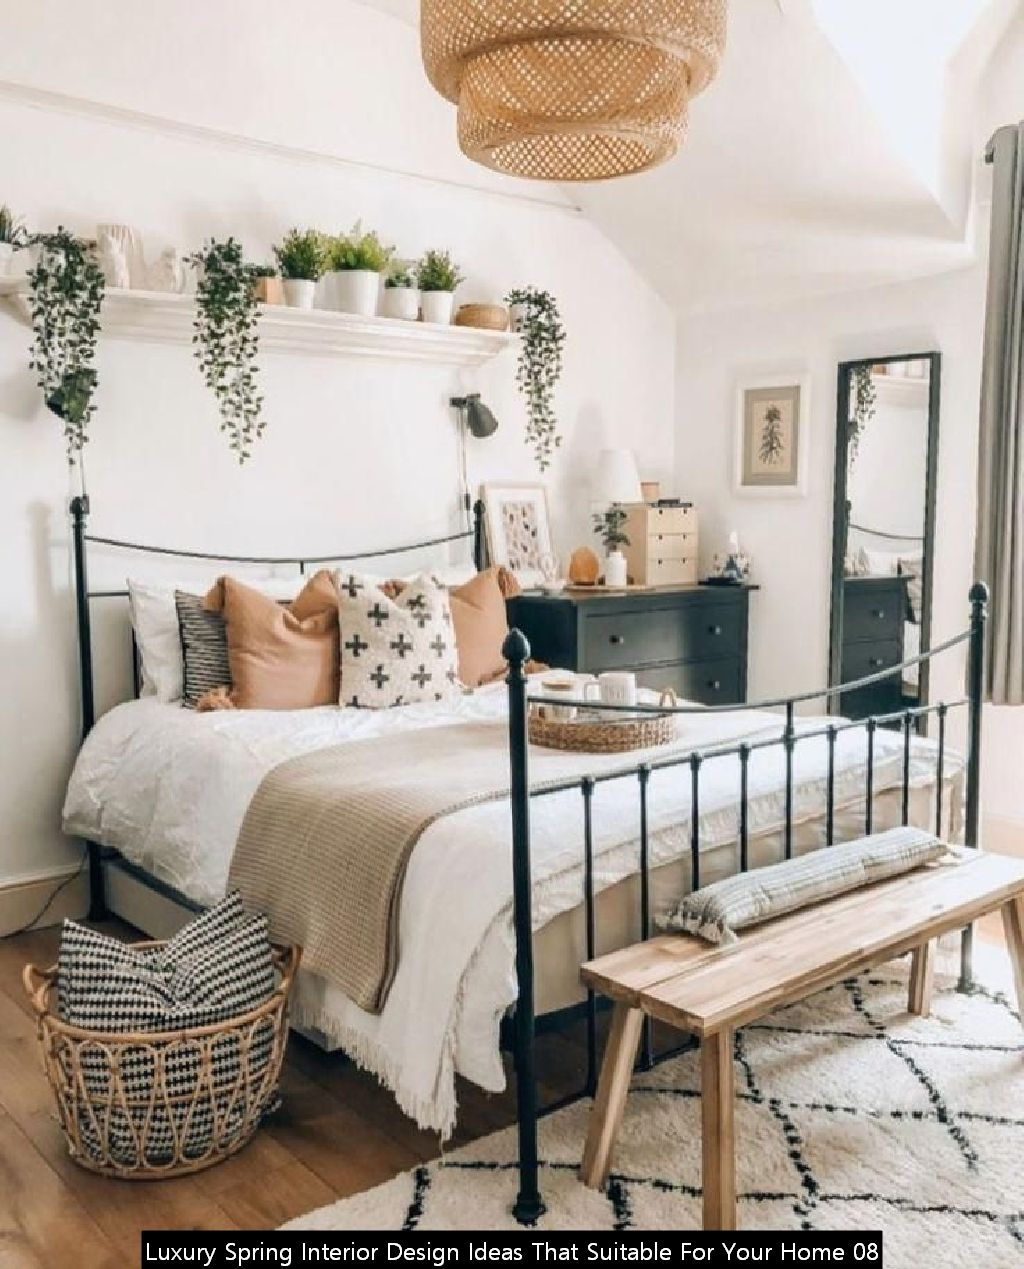 Luxury Spring Interior Design Ideas That Suitable For Your Home 08